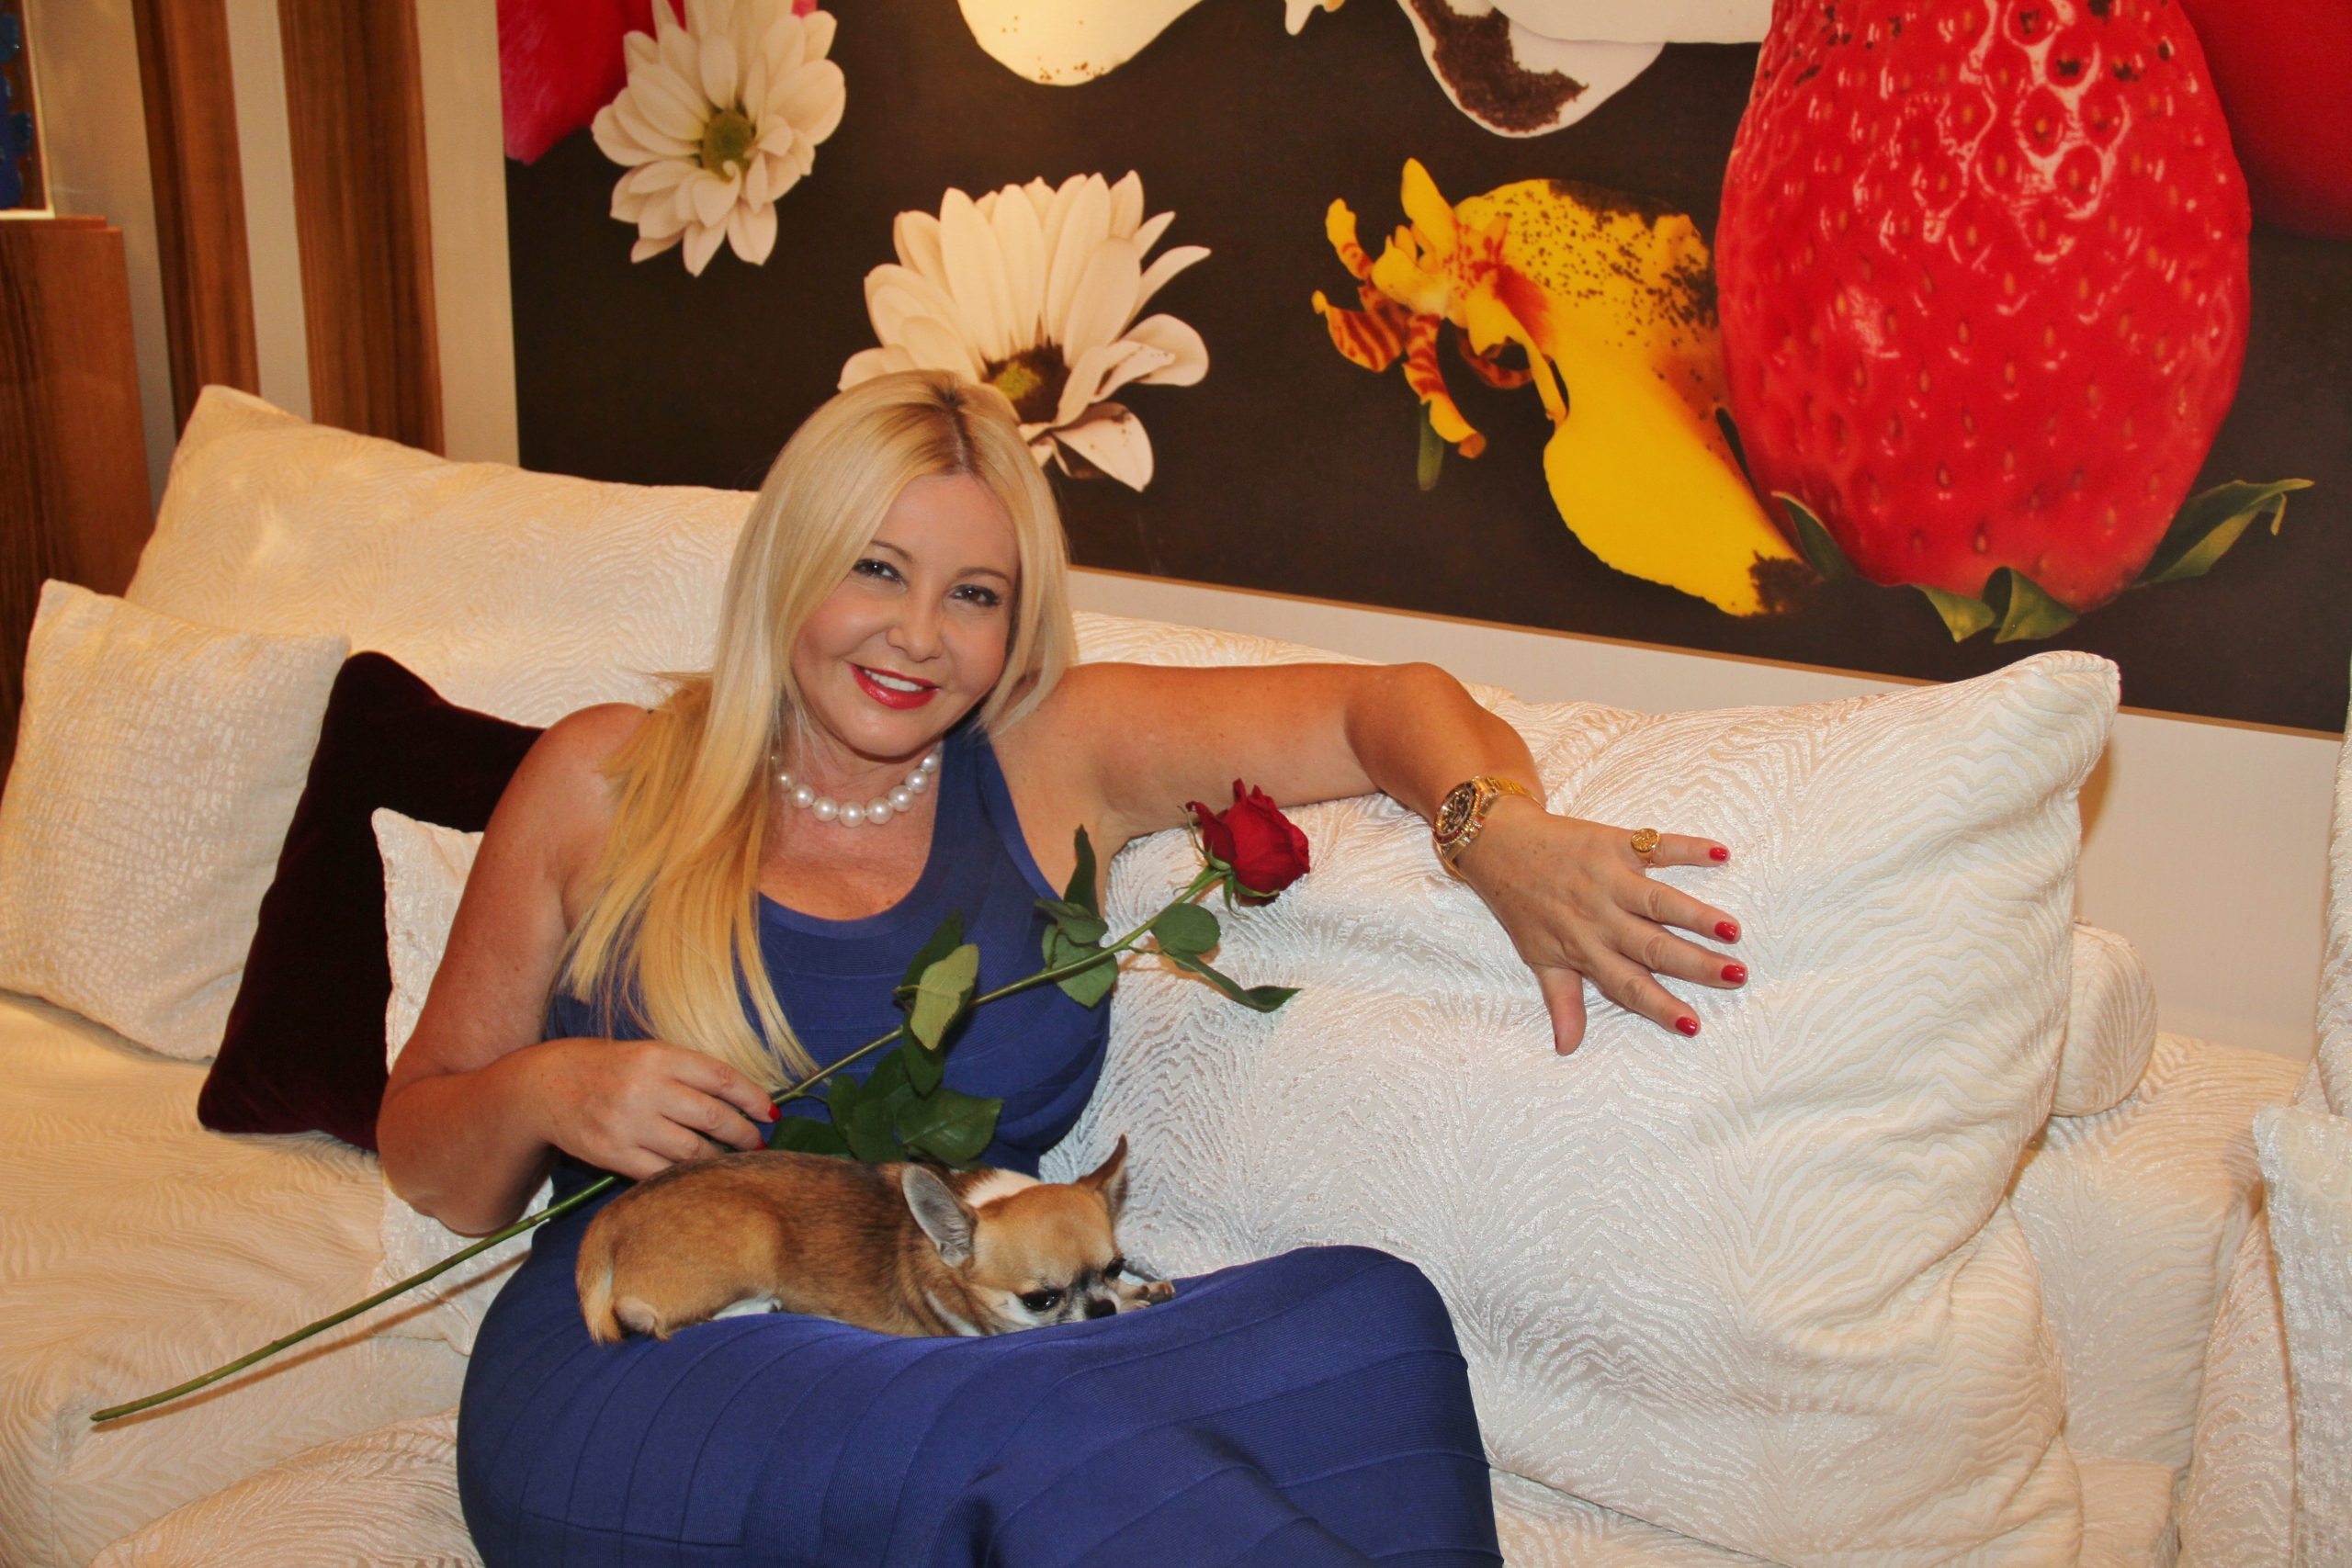 Monika Bacardi received us at her home in Monte Carlo